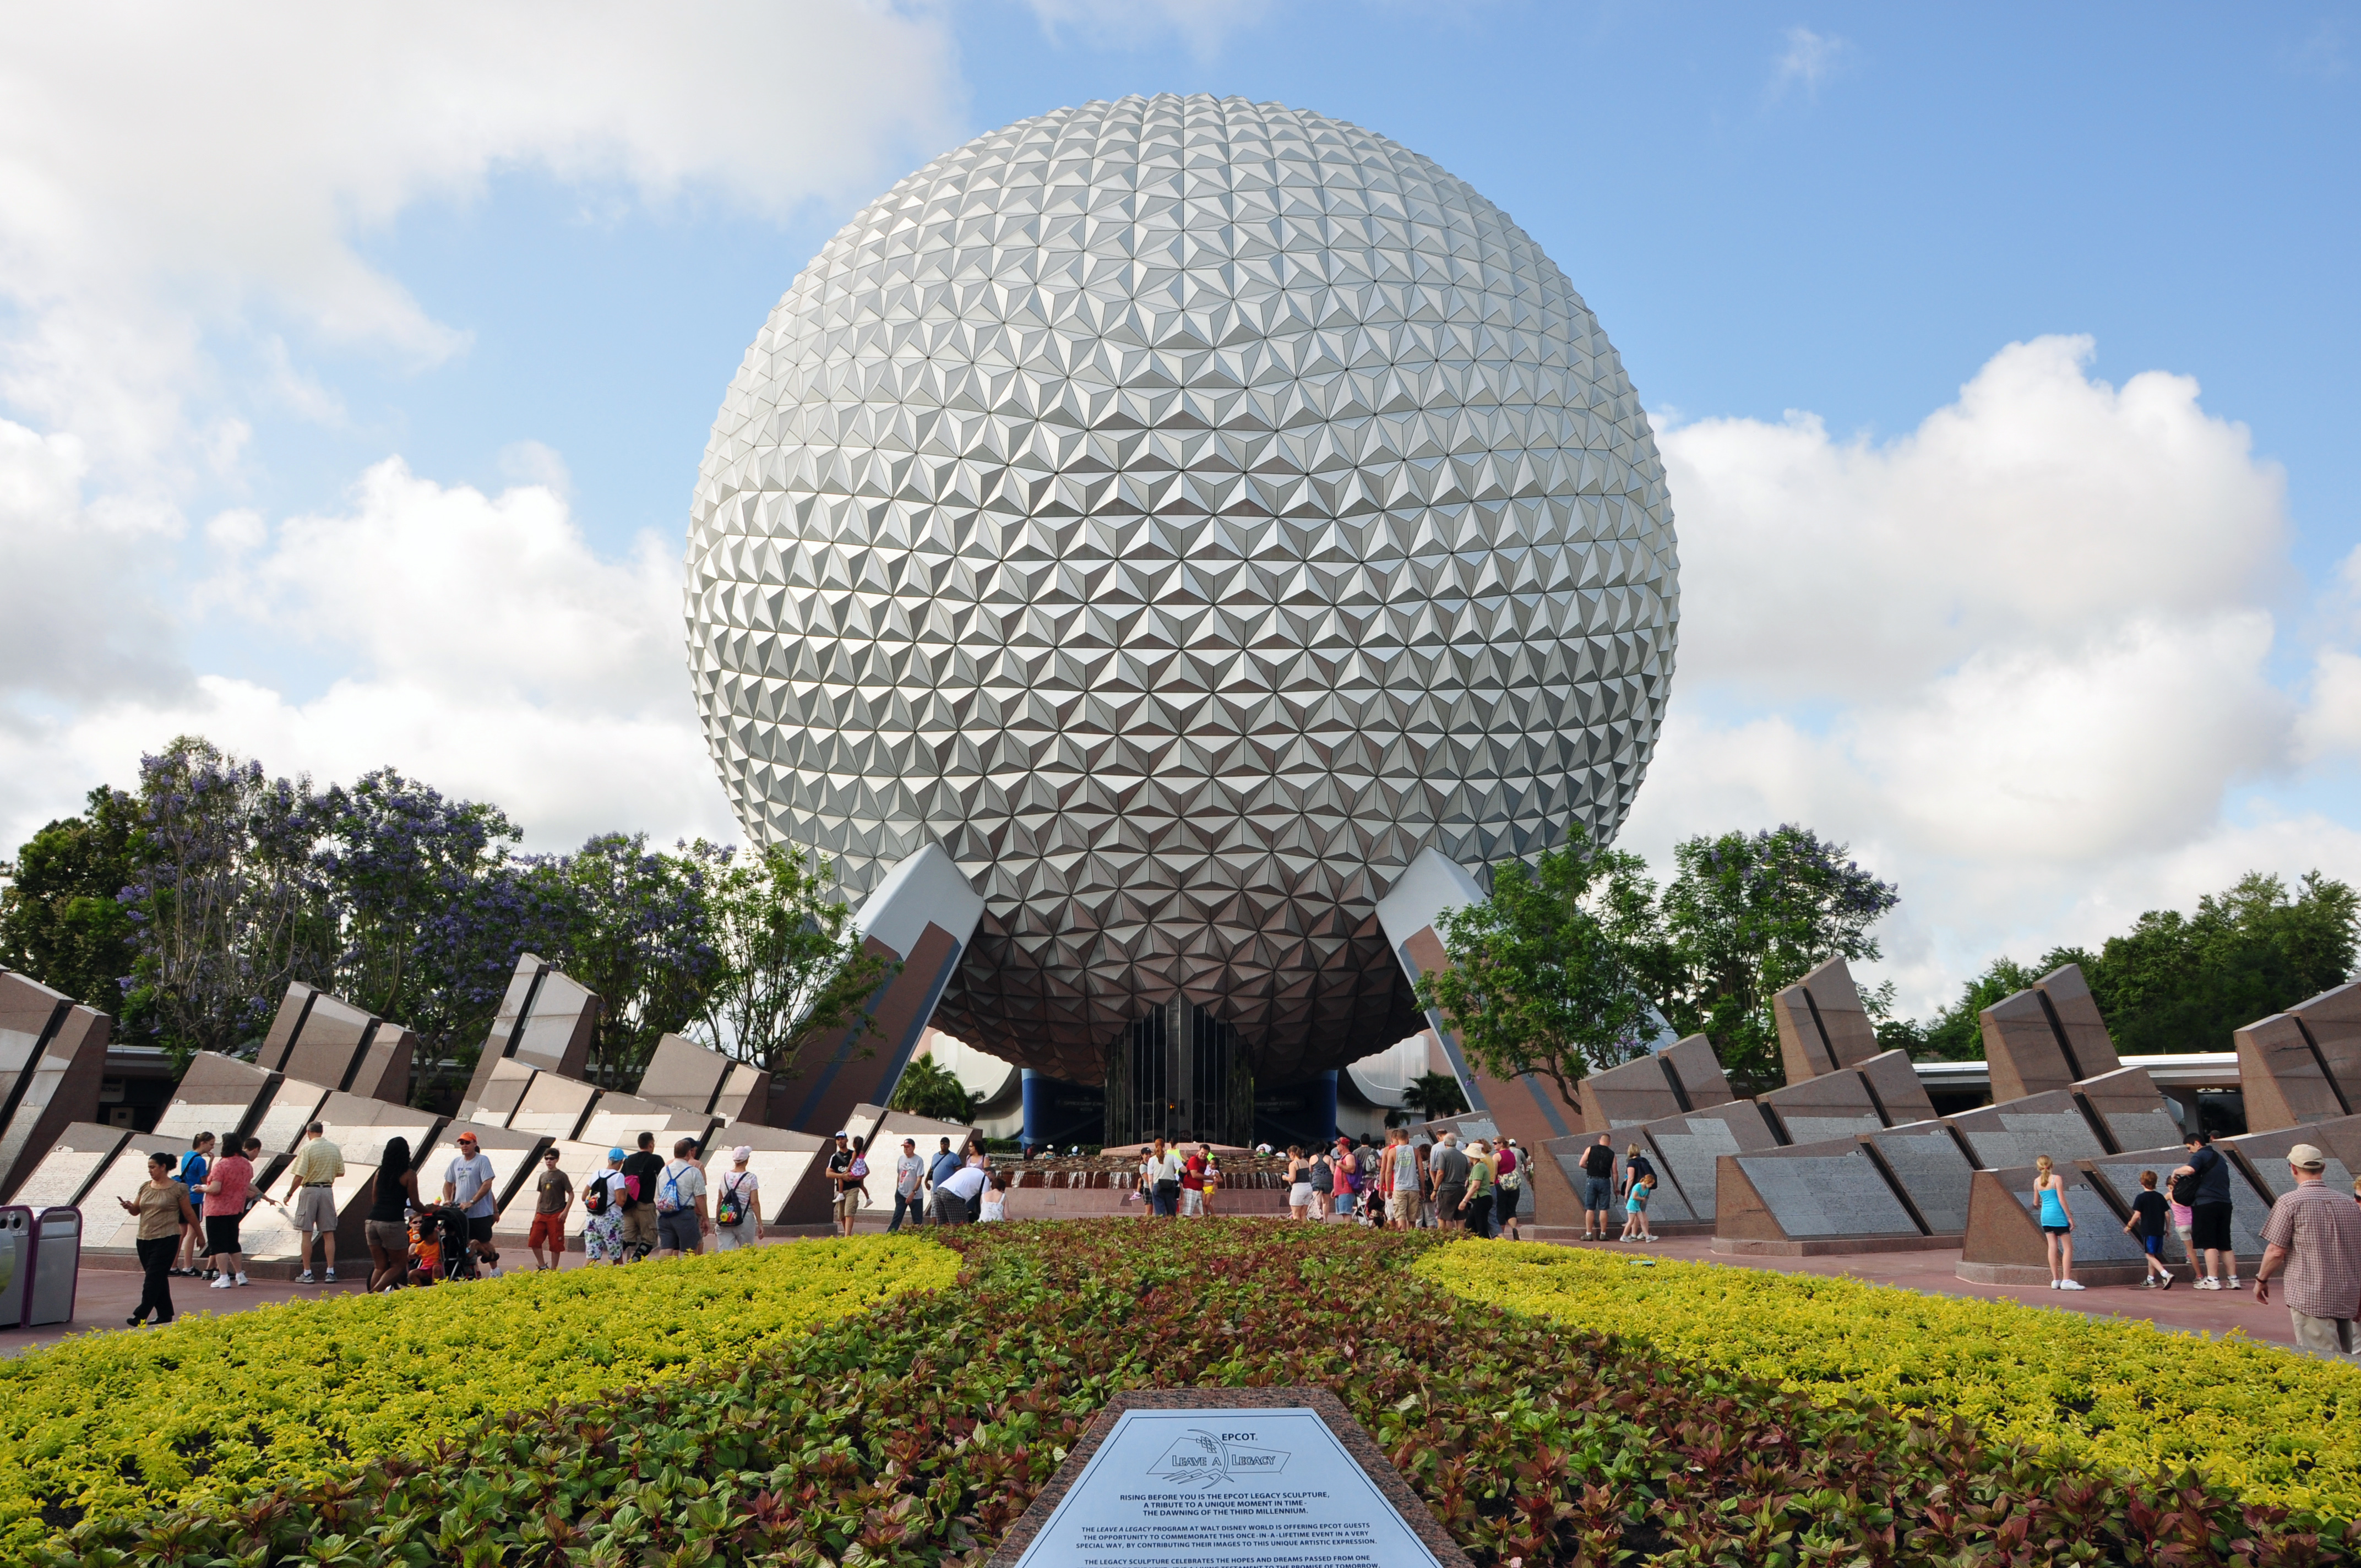 Spaceship Earth remains the central attraction of Epcot